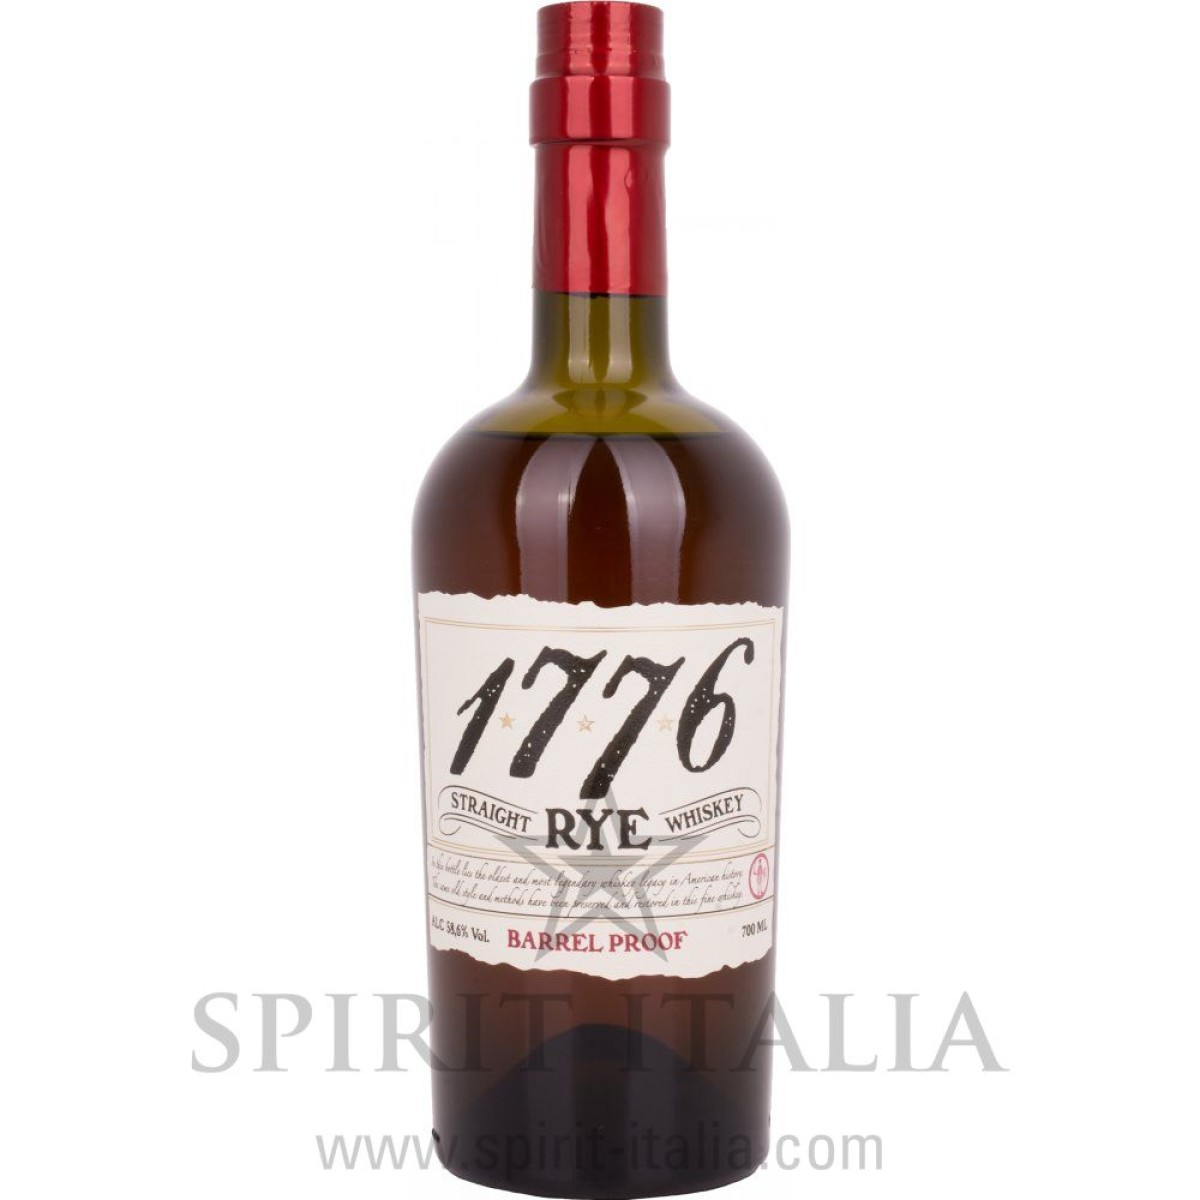 1776 Straight RYE Whiskey Barrel Proof Old Style